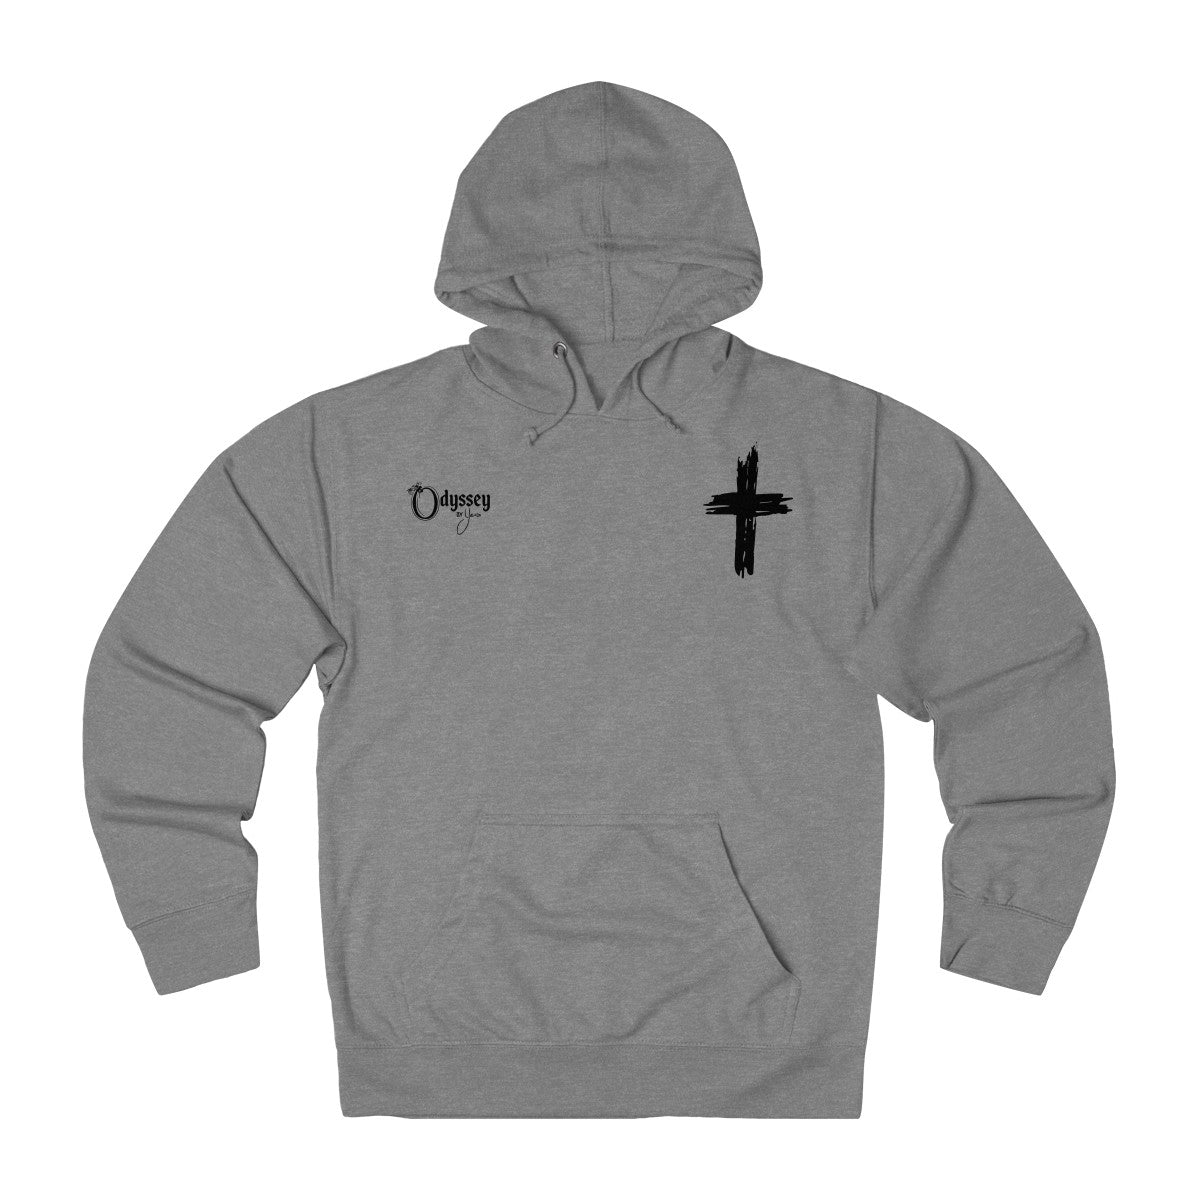 Odyssey Cross My Heart Men's French Terry Hoodie